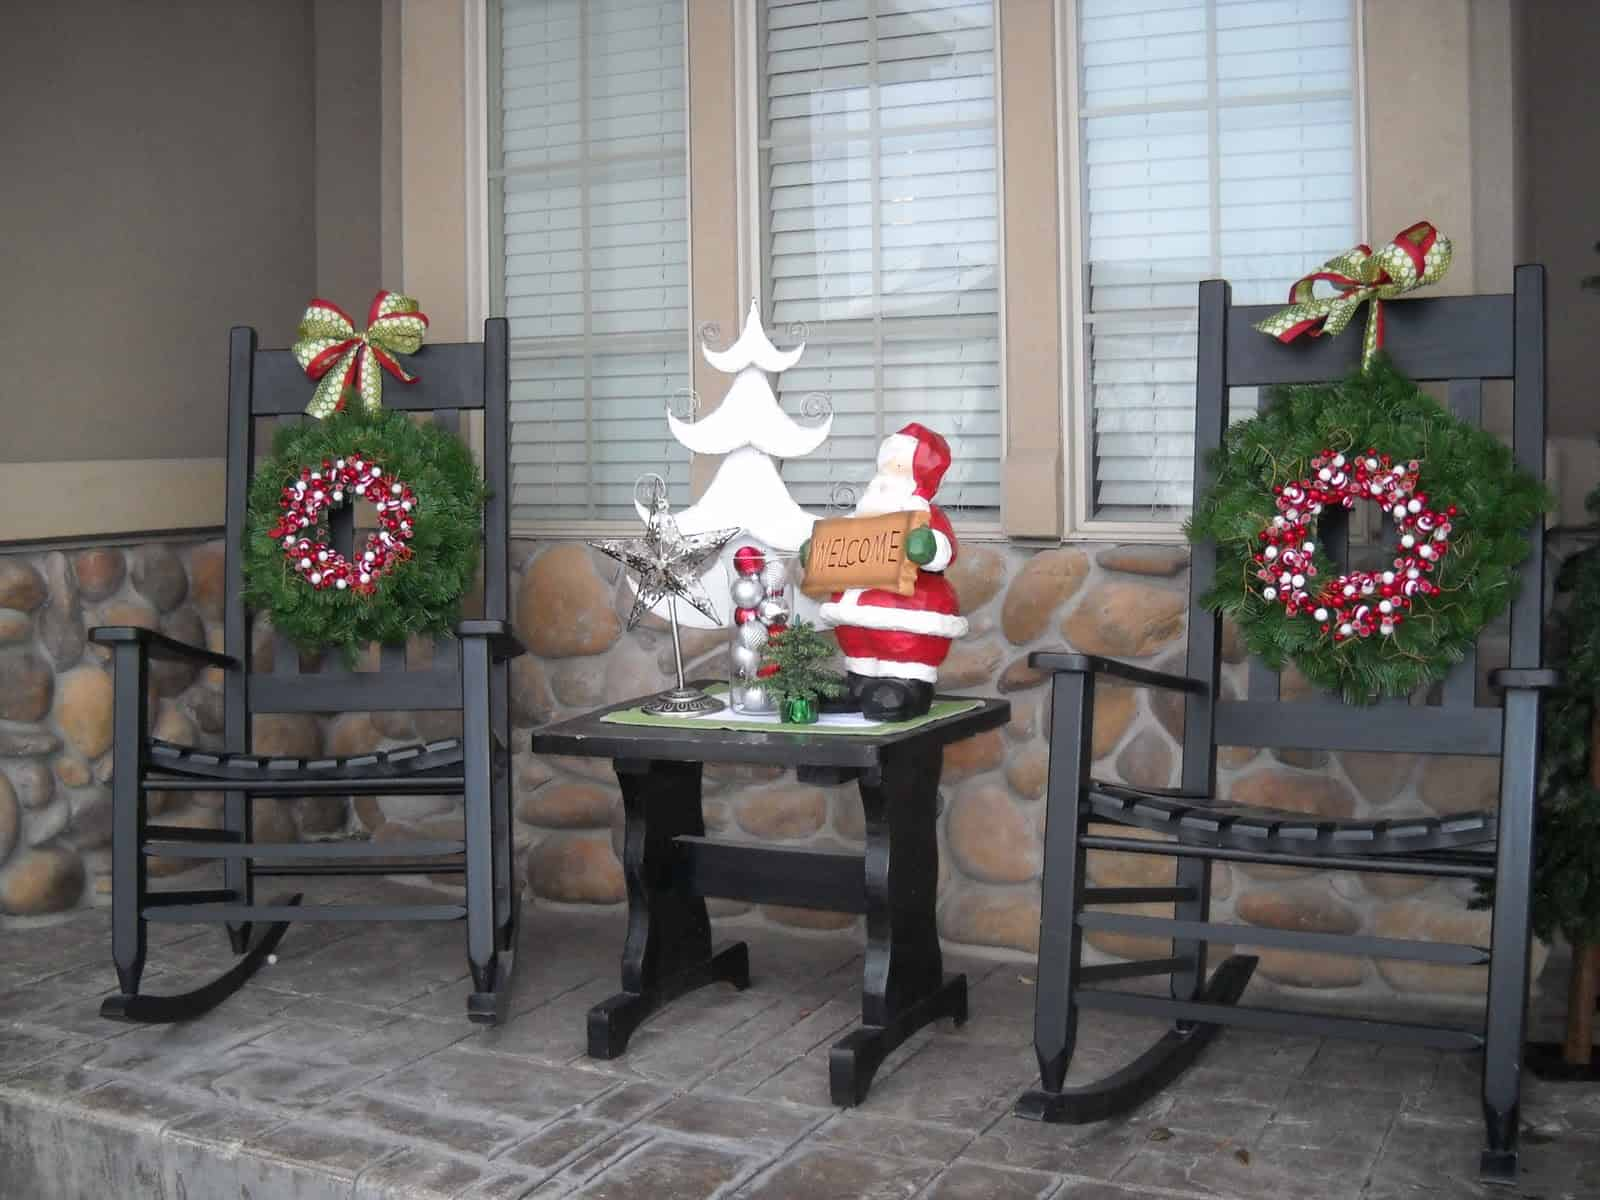 country ideas for outdoor christmas dcor - Outdoor Christmas Decorations Small House